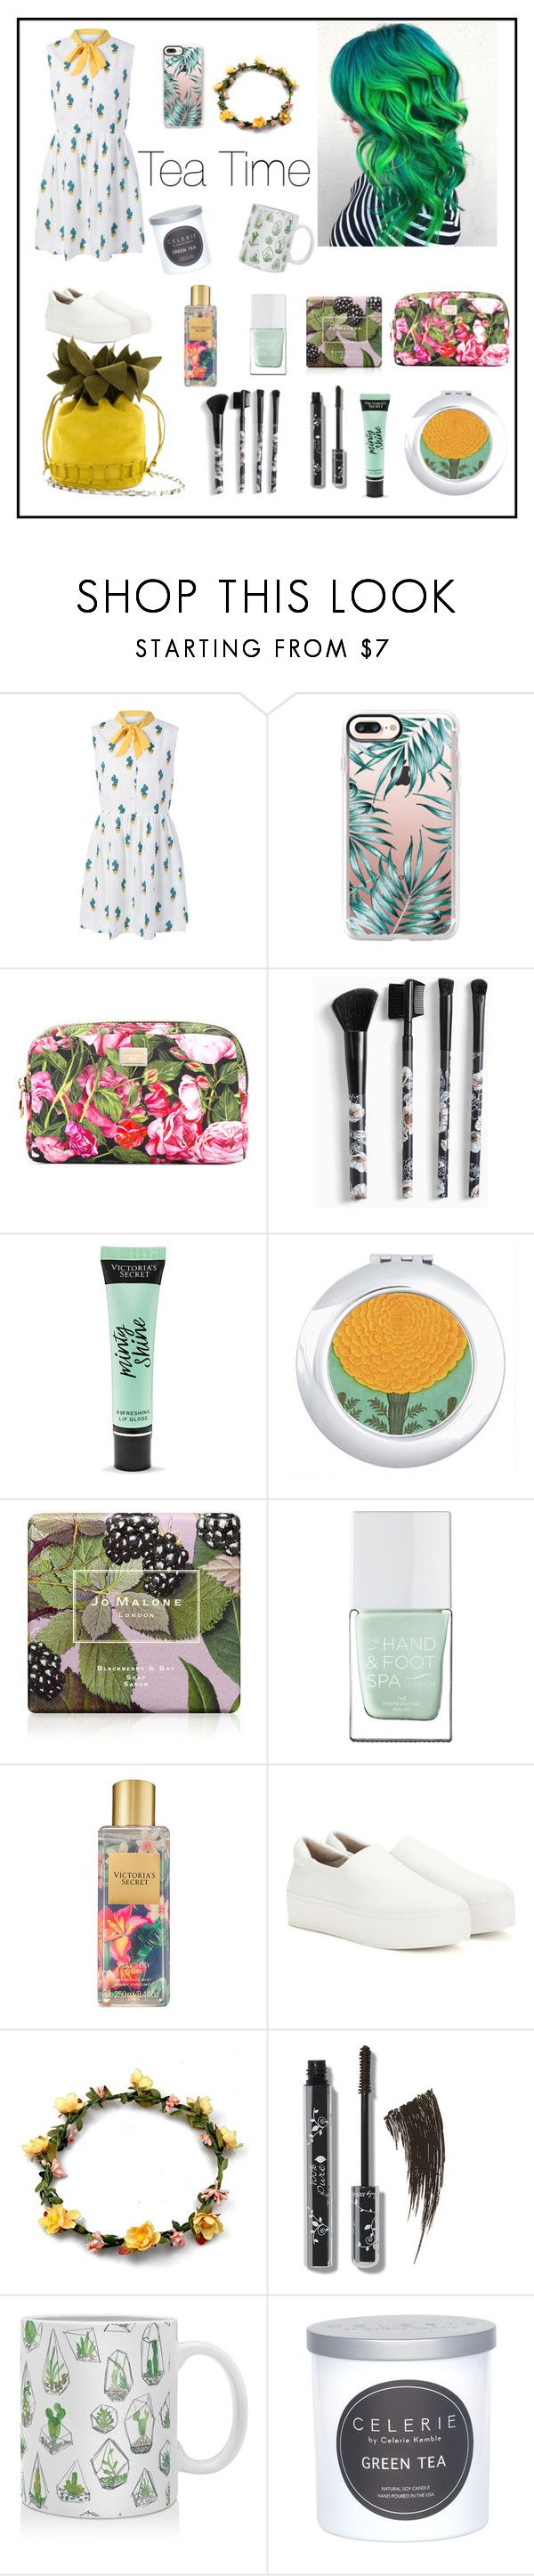 """""""Untitled #12"""" by volohovic-renia ❤ liked on Polyvore featuring Casetify, Dolce&Gabbana, Torrid, Victoria's Secret, Jo Malone, The Hand & Foot Spa, Opening Ceremony, DENY Designs and CELERIE by Celerie Kemble"""